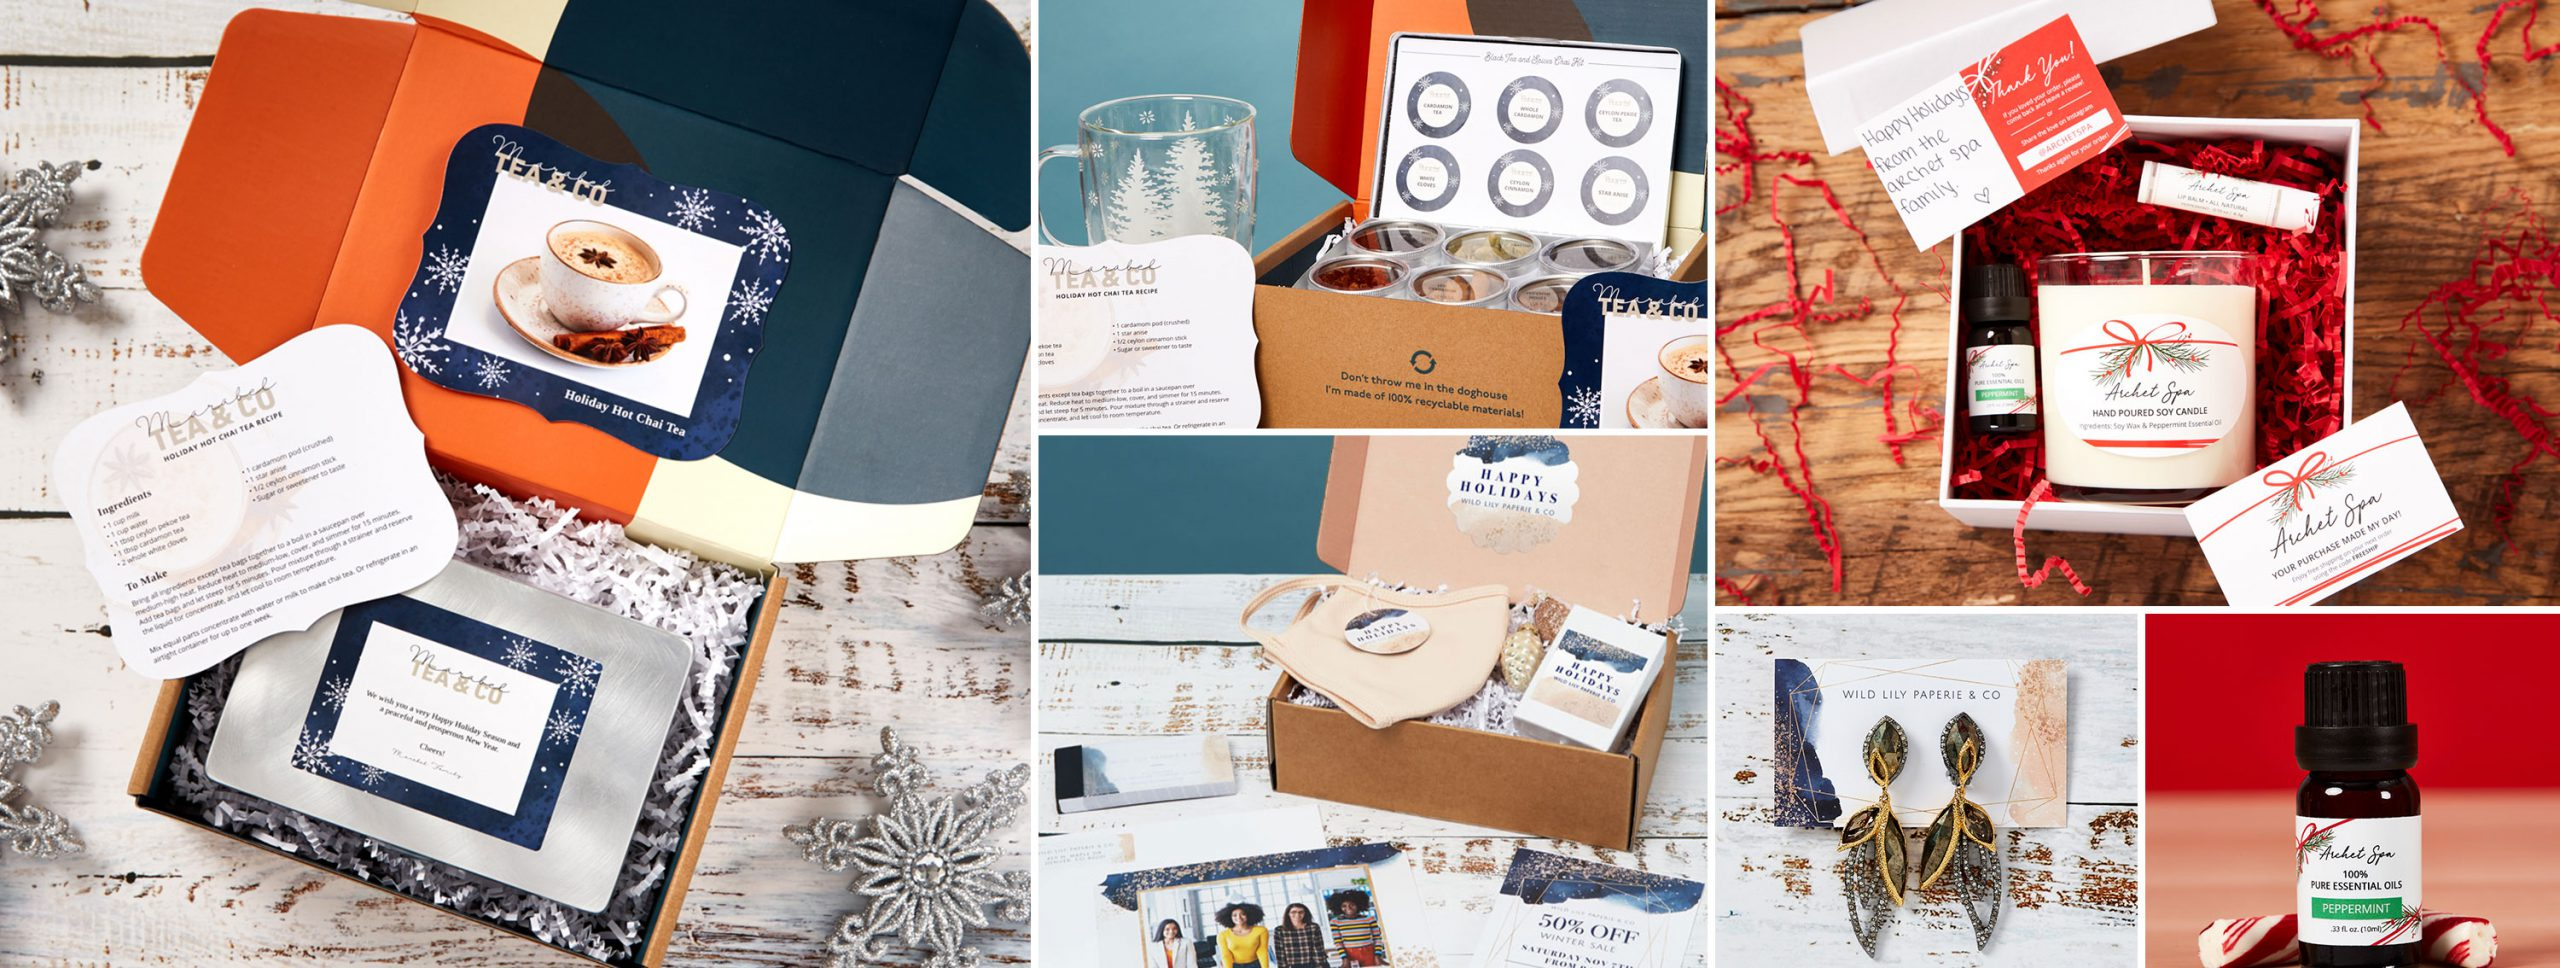 Turn your products into holiday gifts and Christmas gifts for clients and customers